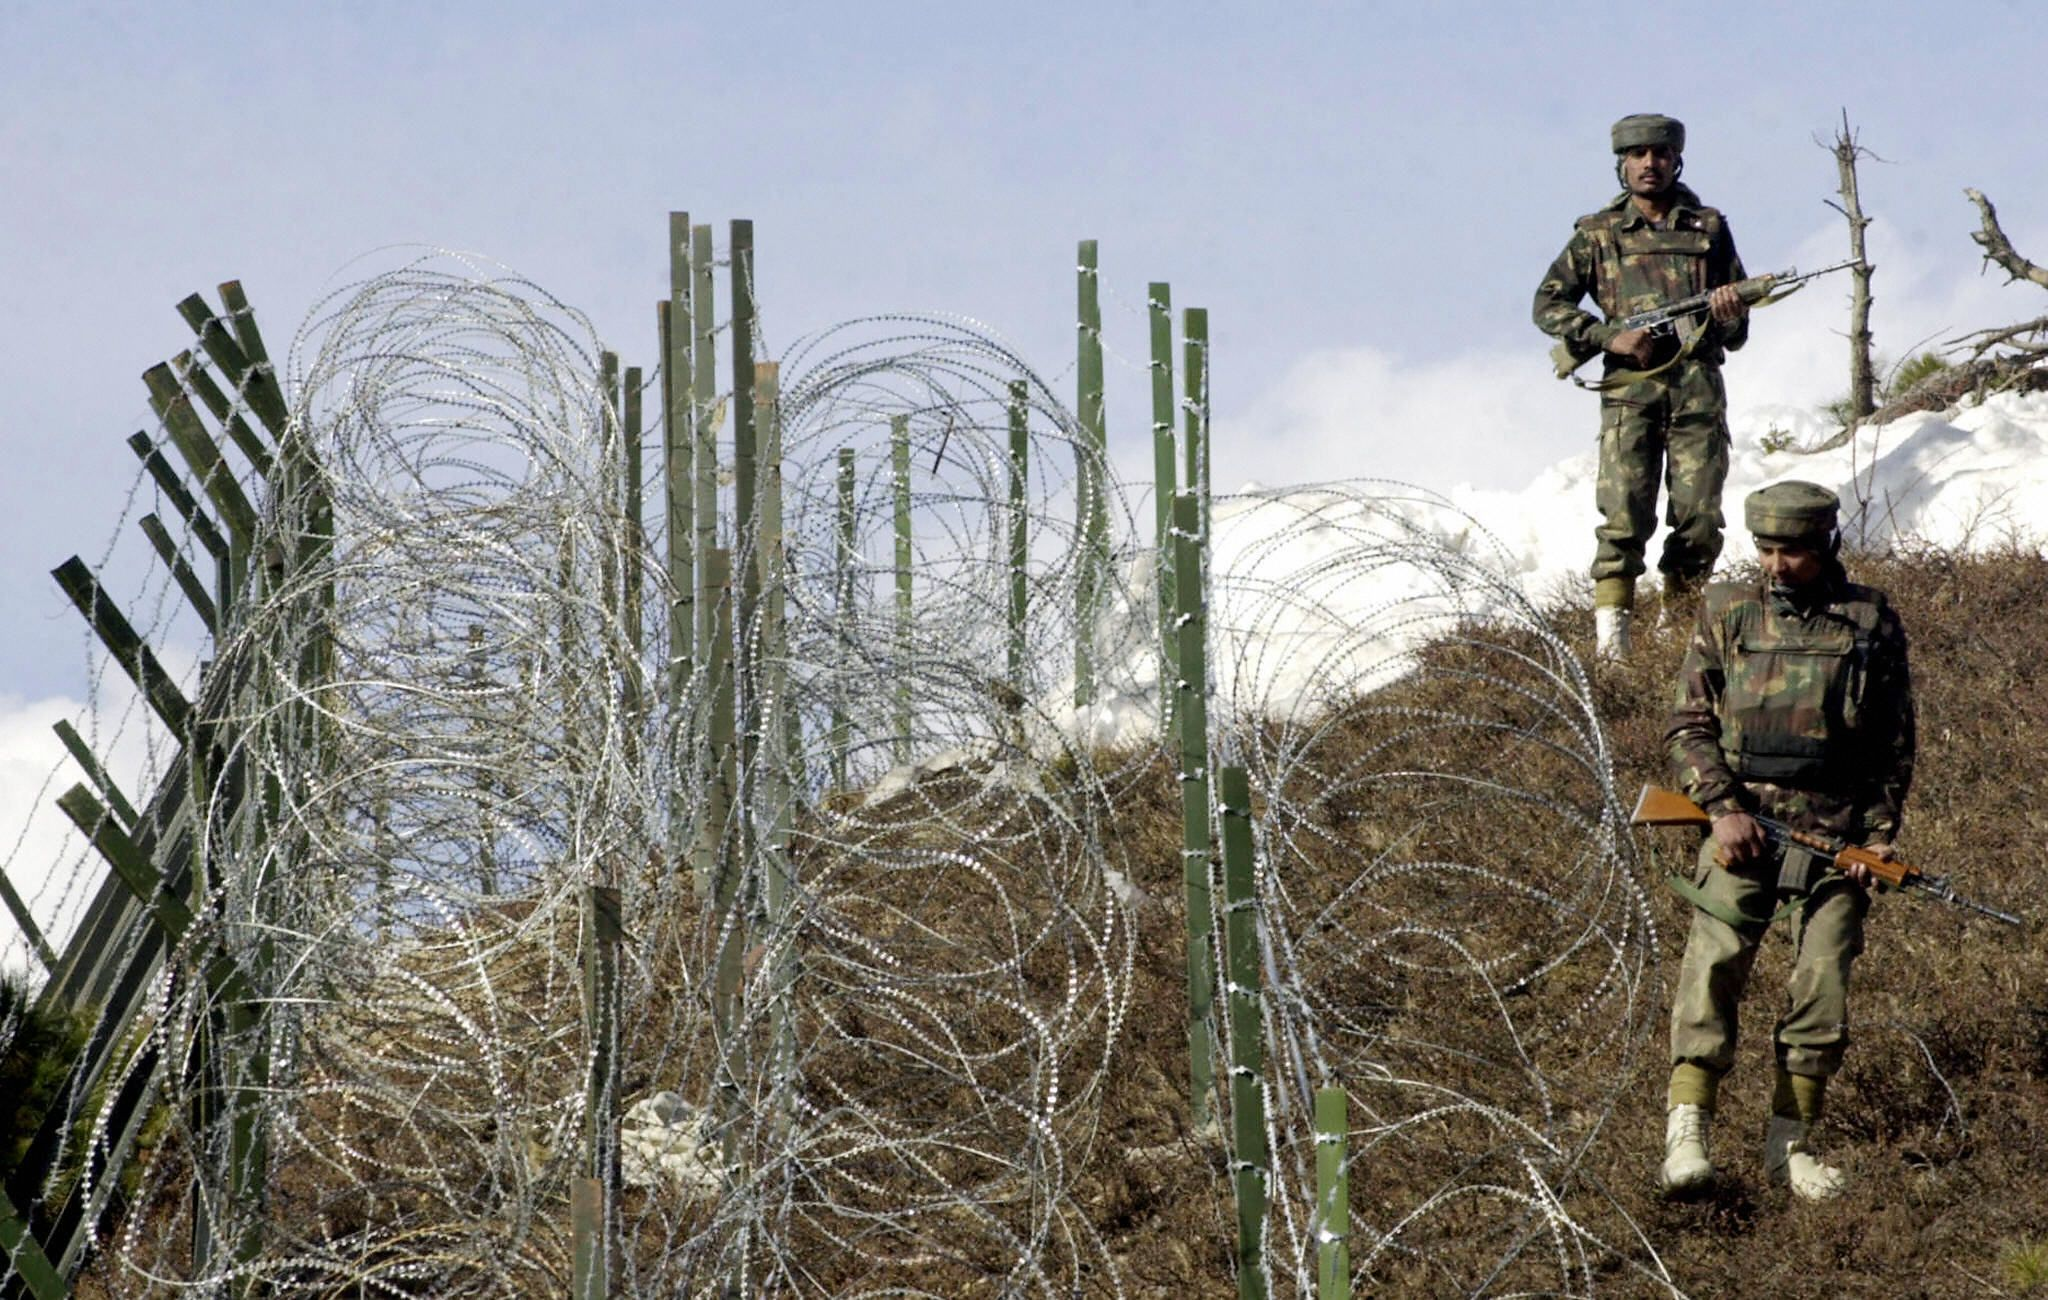 Indian soldiers patrol along a barbed-wire fence, 04 December 2003, near Baras Post on the Line of Control (LoC) between Pakistan and India some 174 kilometers north west of Srinagar. (SAJJAD HUSSAIN/AFP via Getty Images)